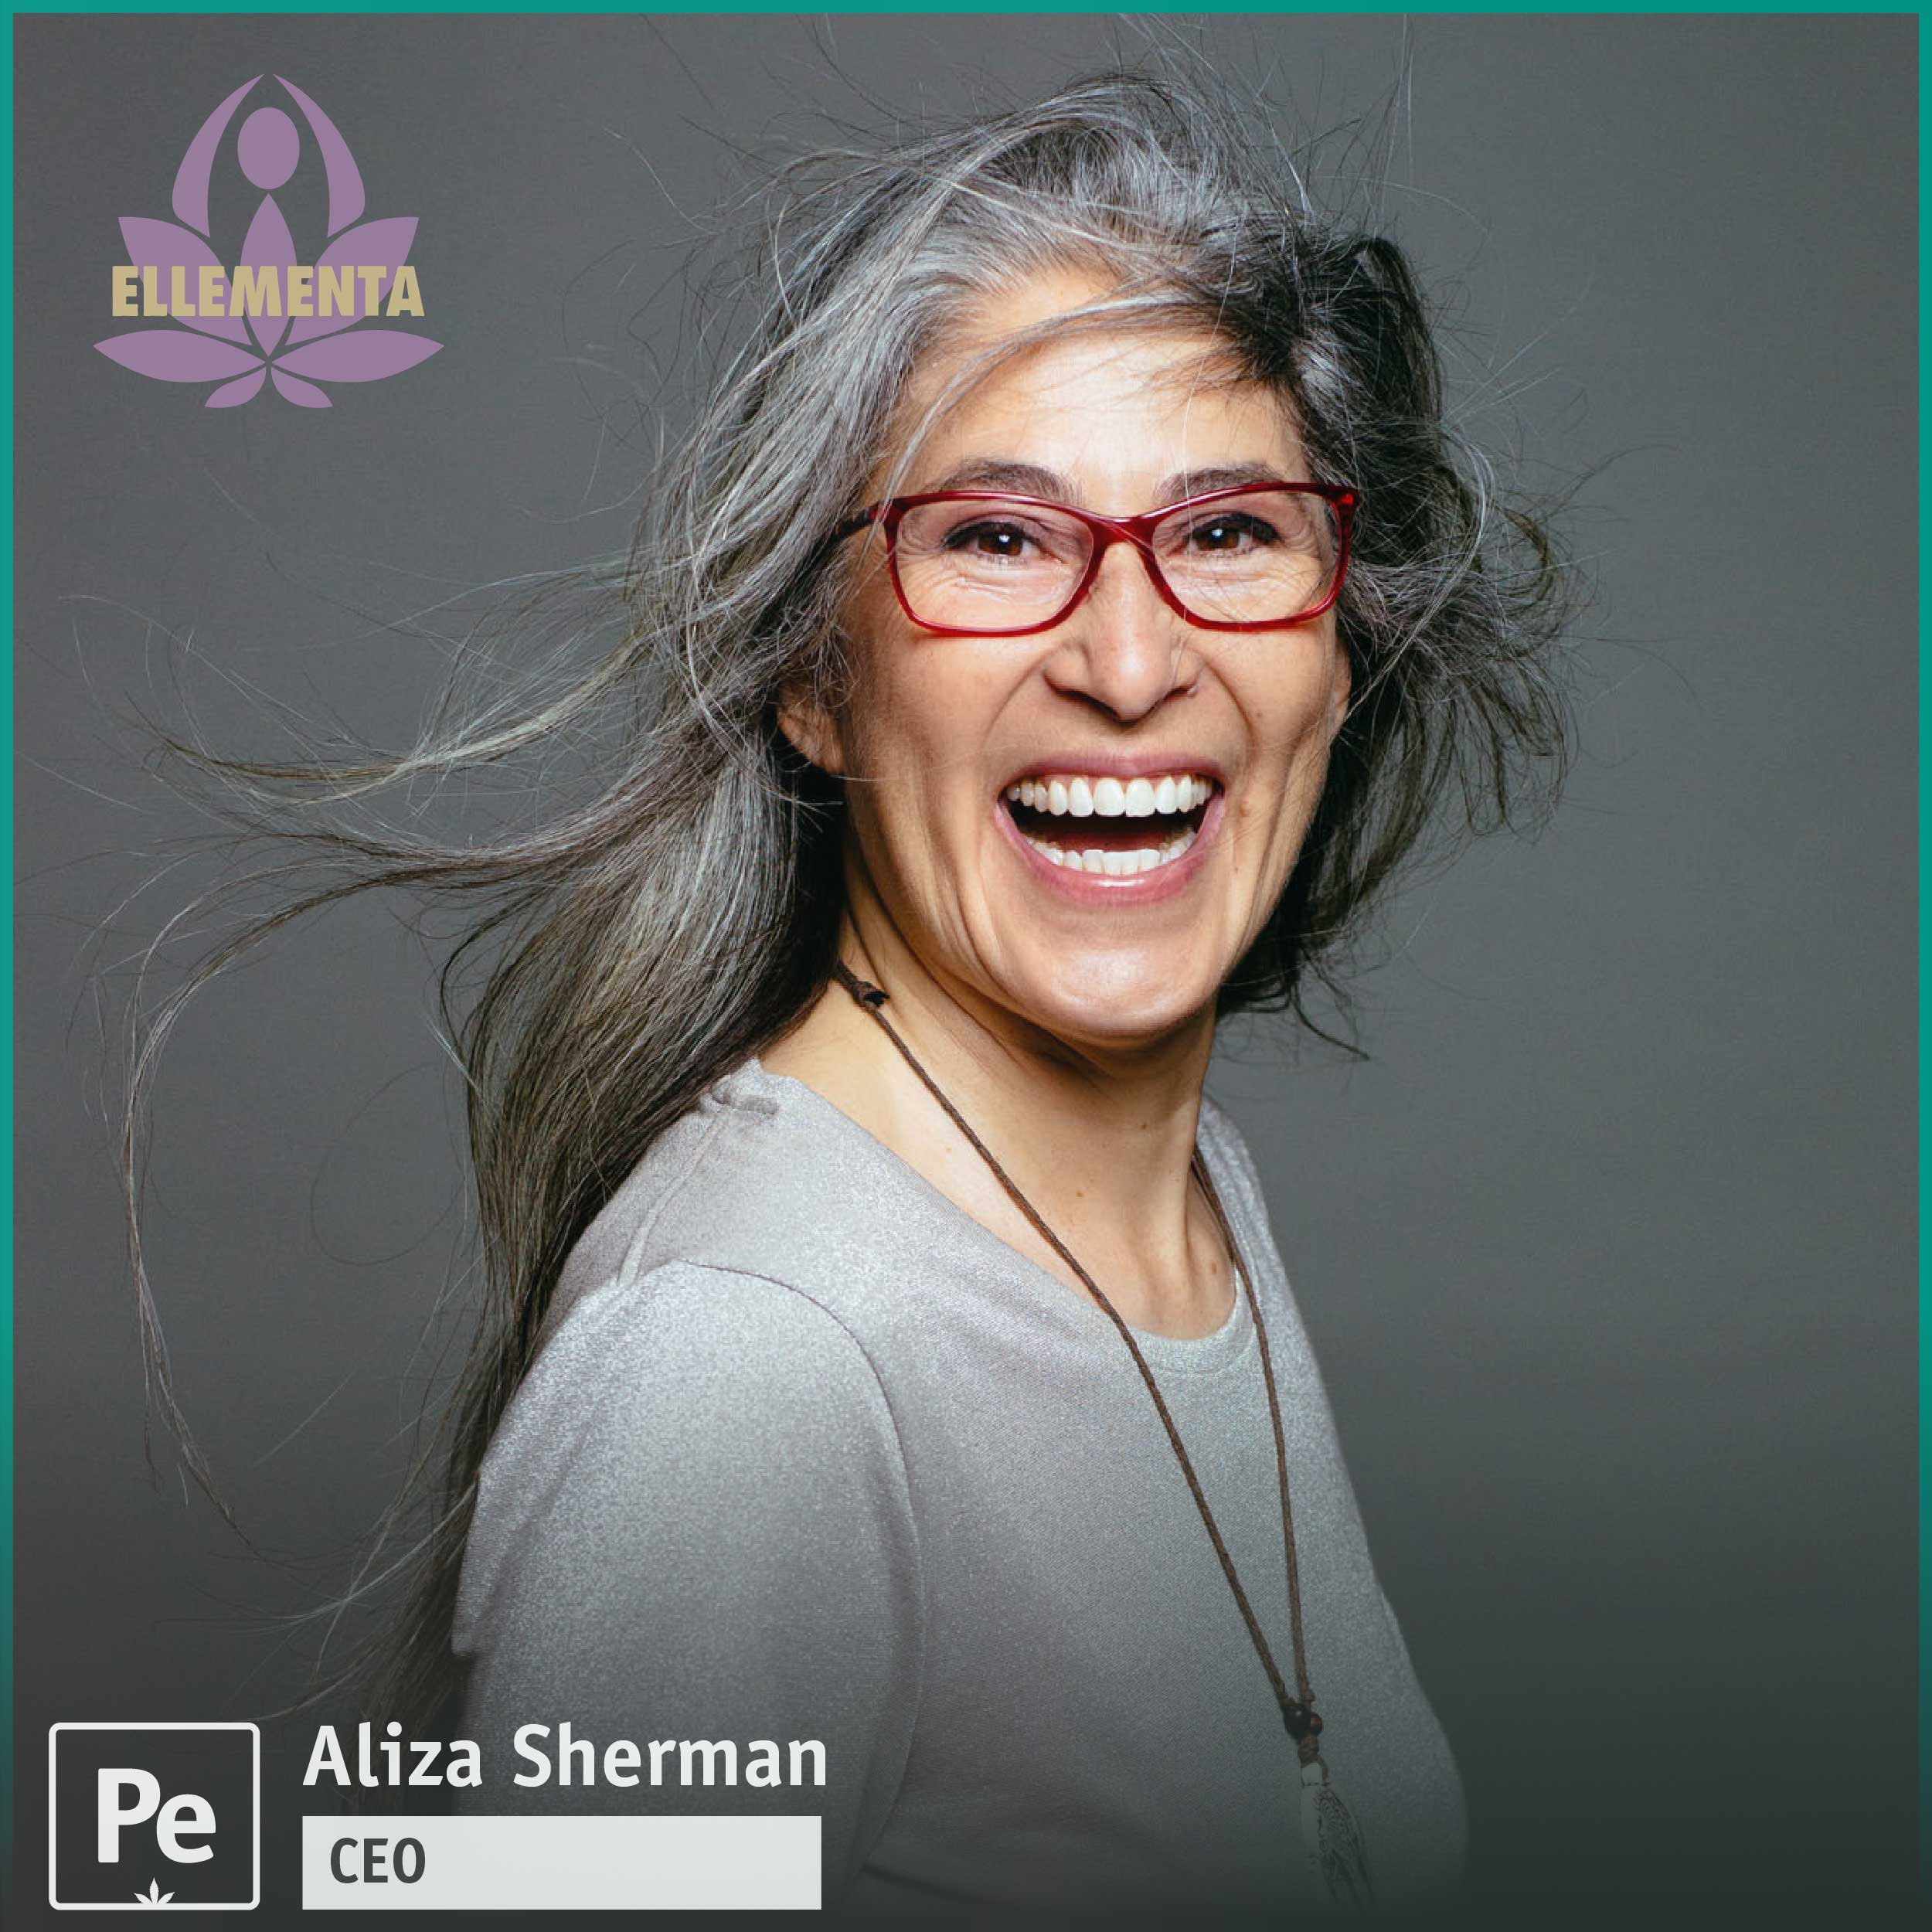 Aliza Sherman, CEO of Ellementa, a global network offering cannabis education for women